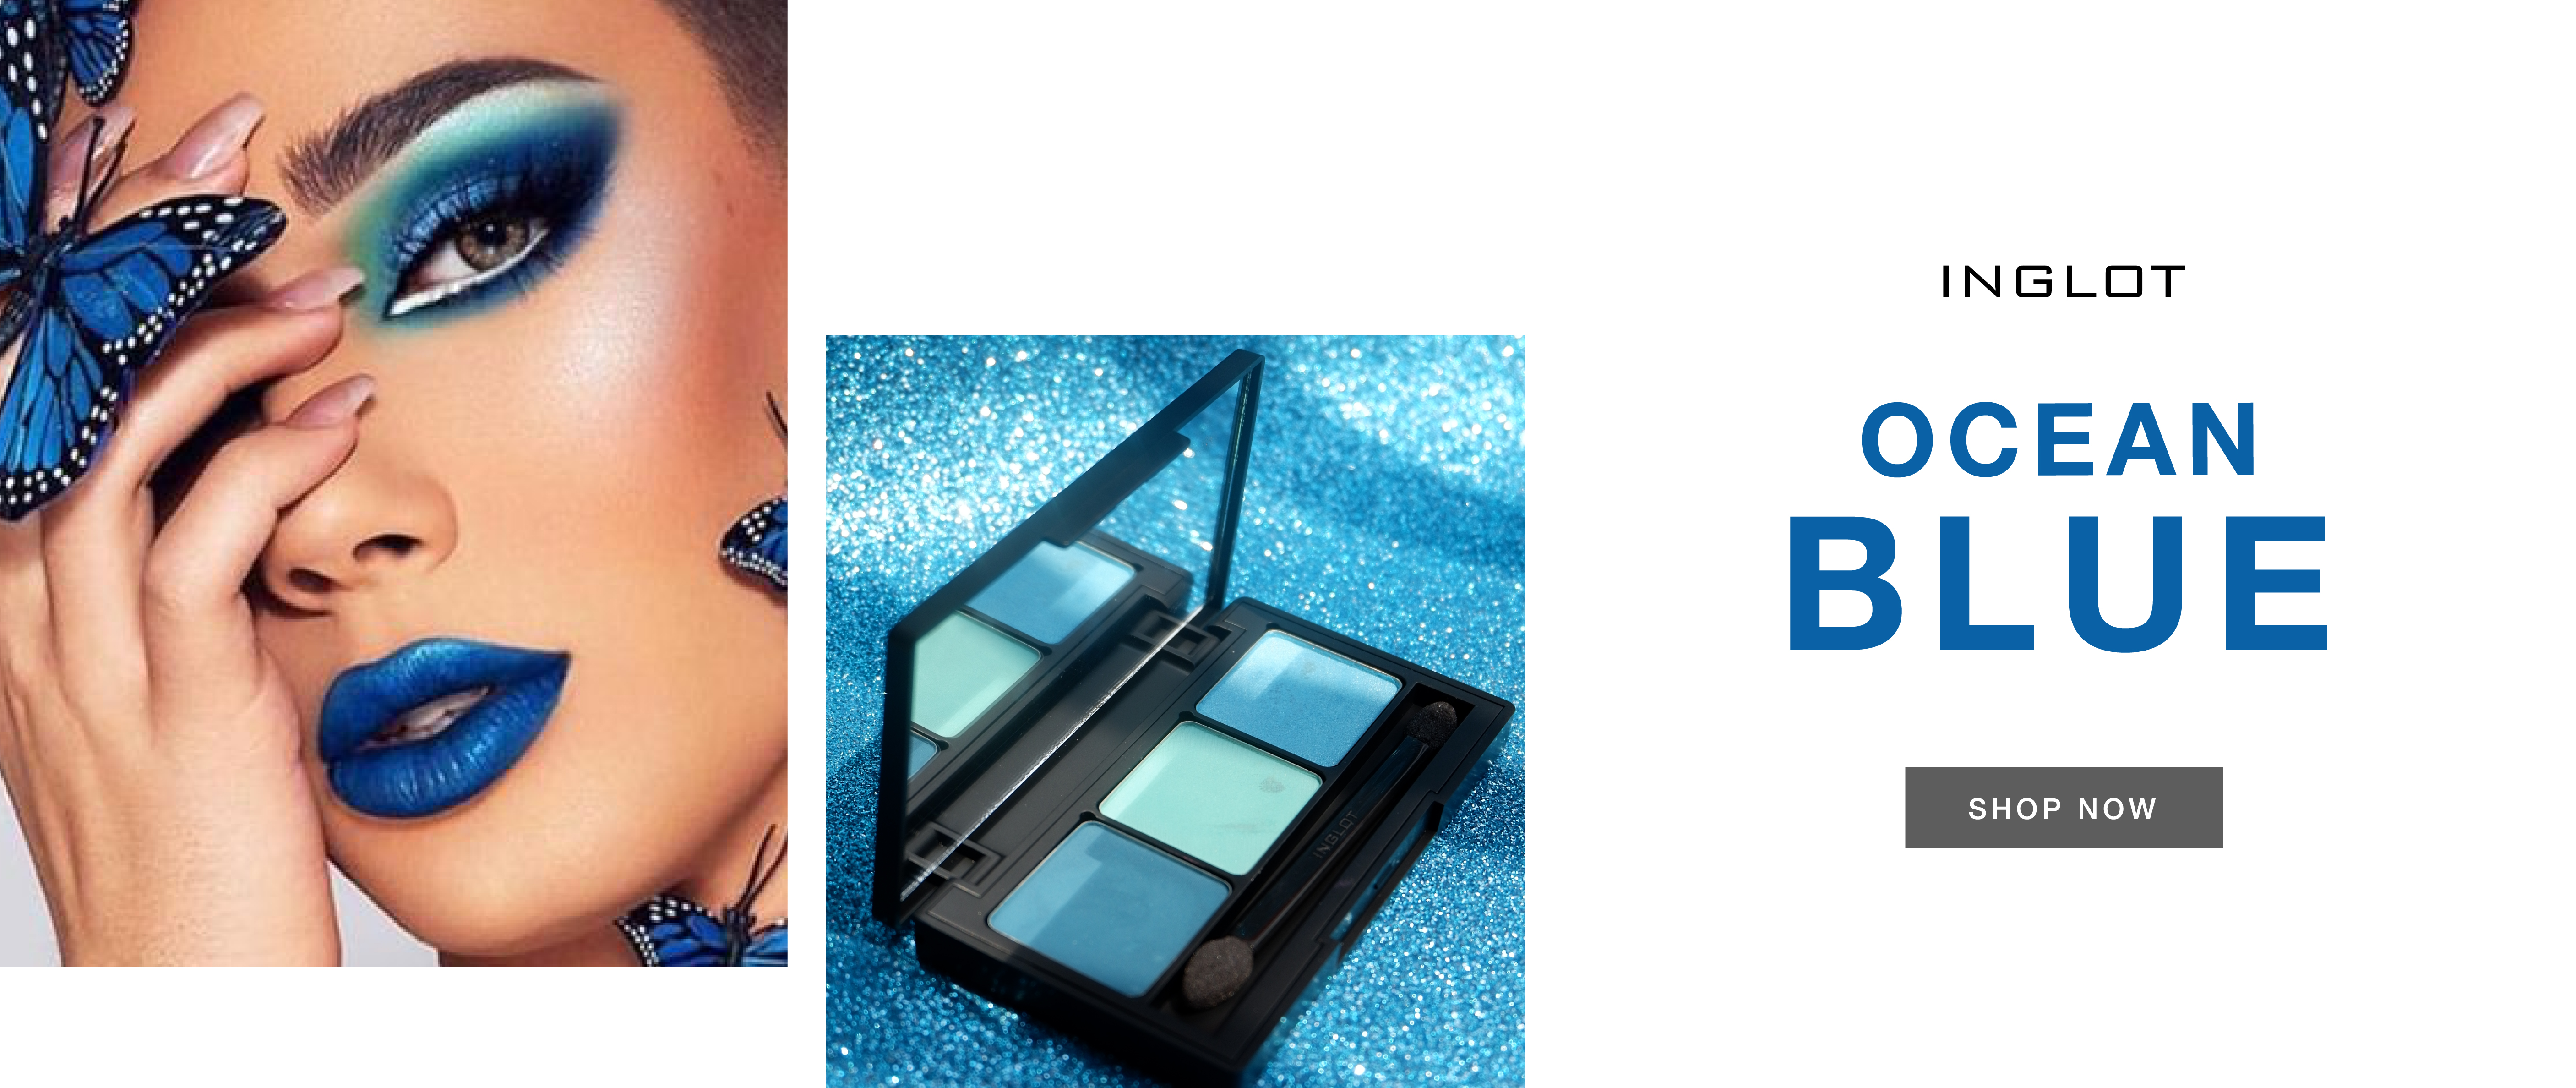 INGLOT SUMMER EYE SHADOW PALETTE OCEAN BLUE